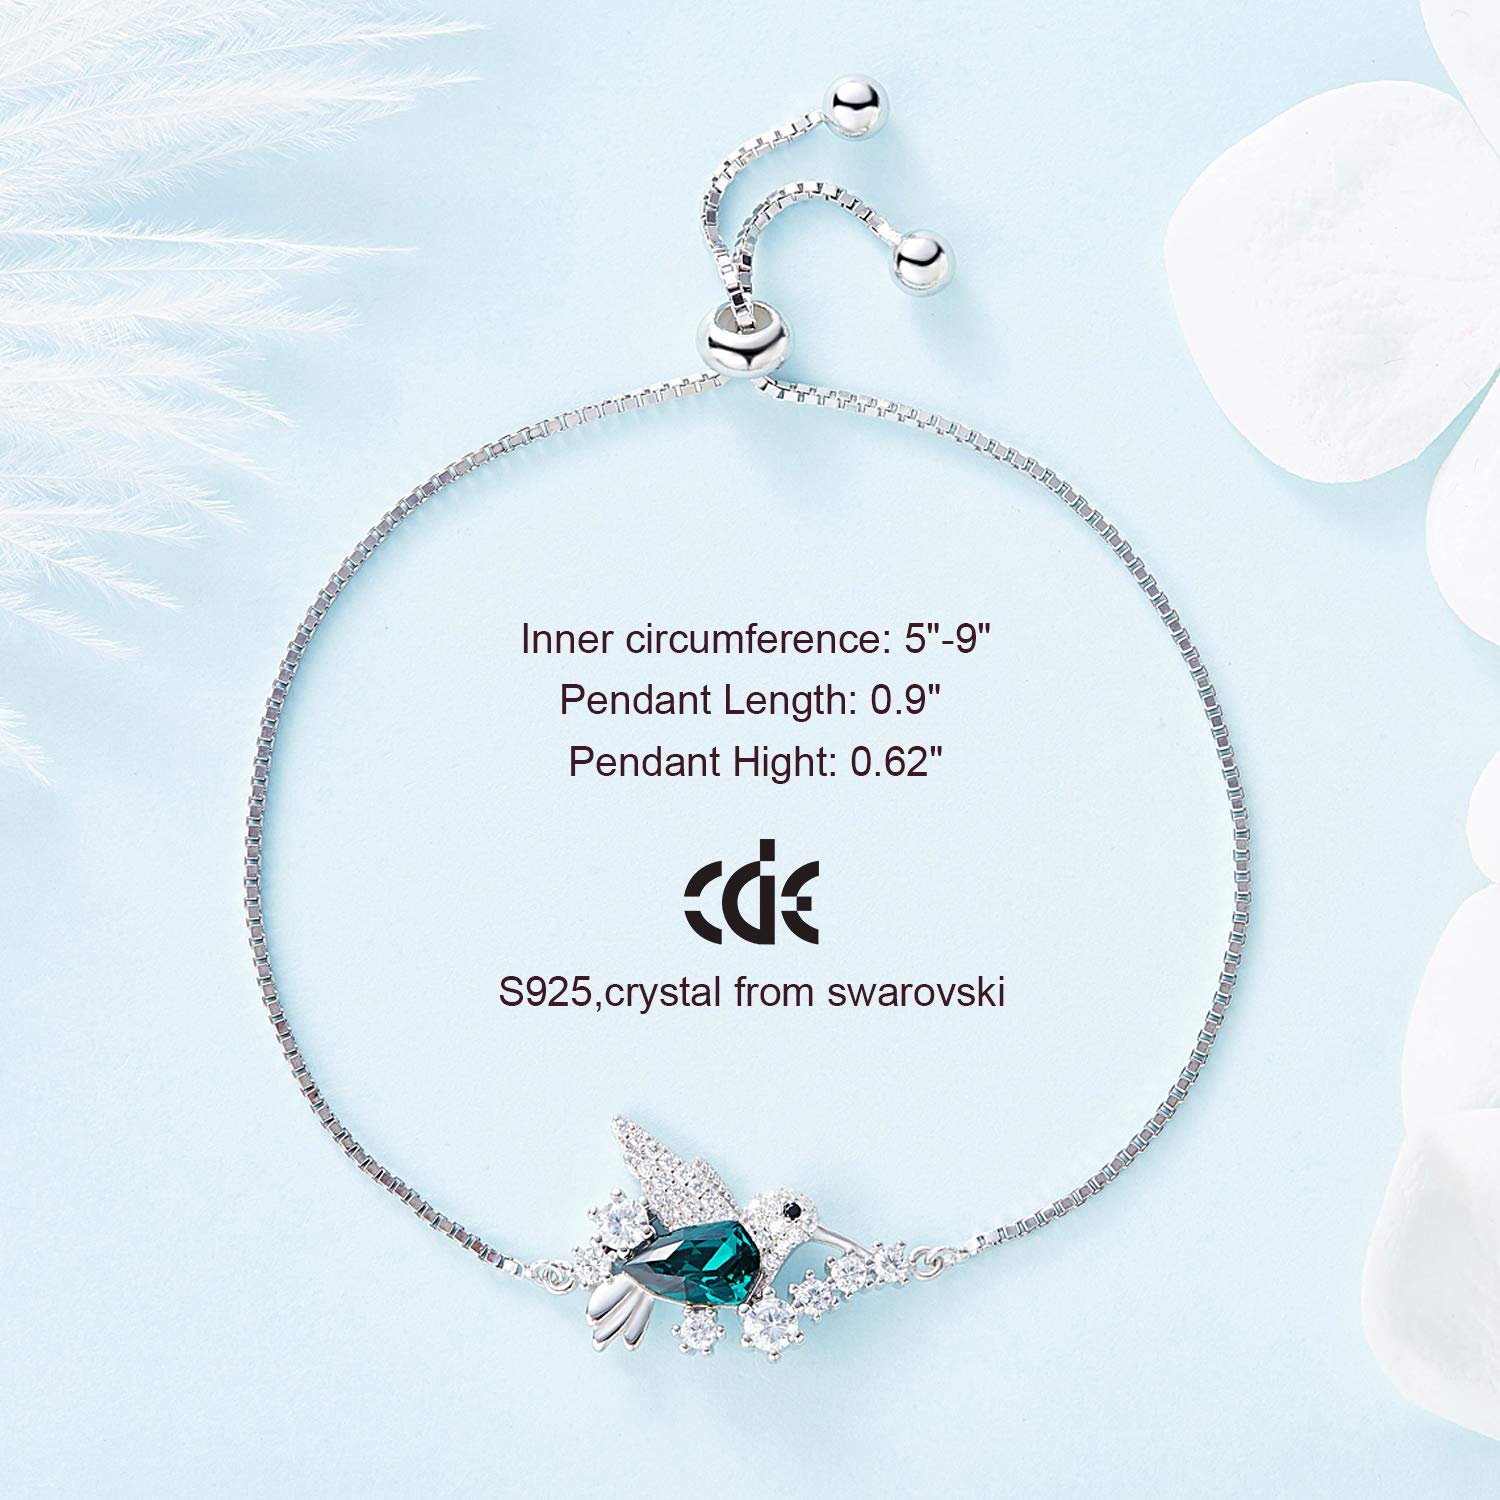 CDE Bracelets for Women, Silver Bracelet Hummingbird Crystal Bangles Charm Jewelry Enriched with Swarovski Crystals by CDE (Image #5)